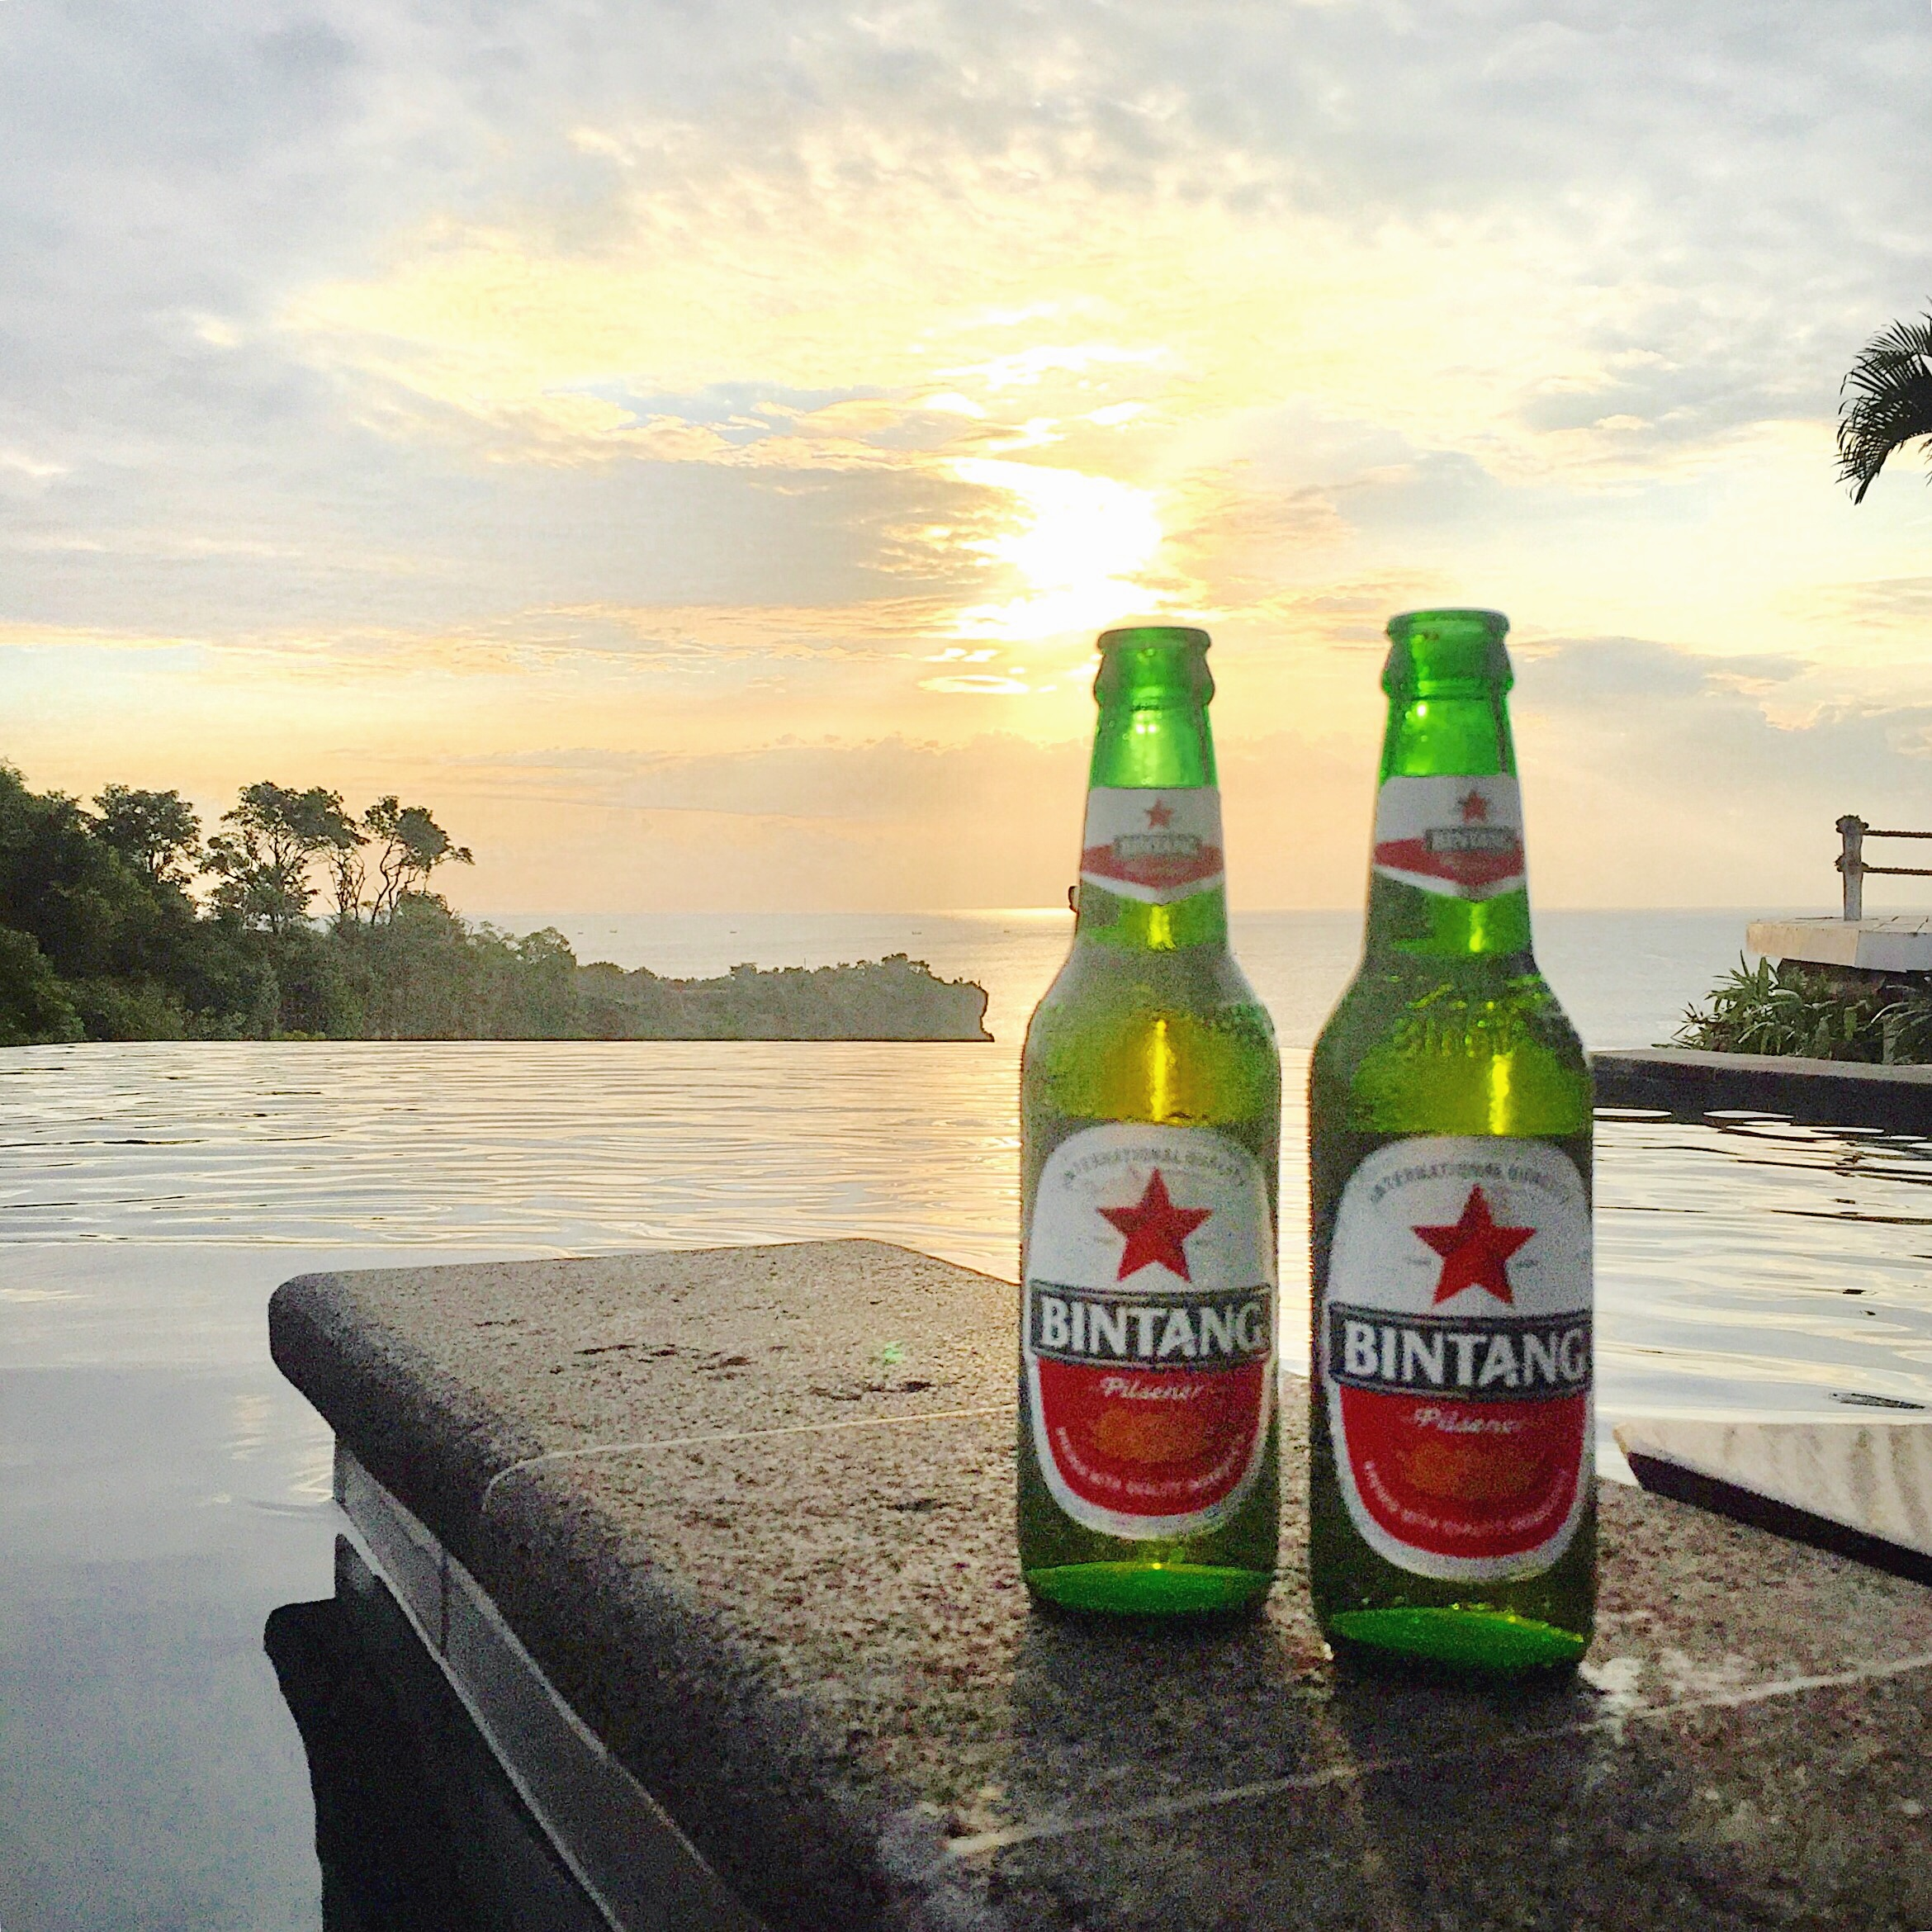 Drinking Bintang beer during sunset in Bali